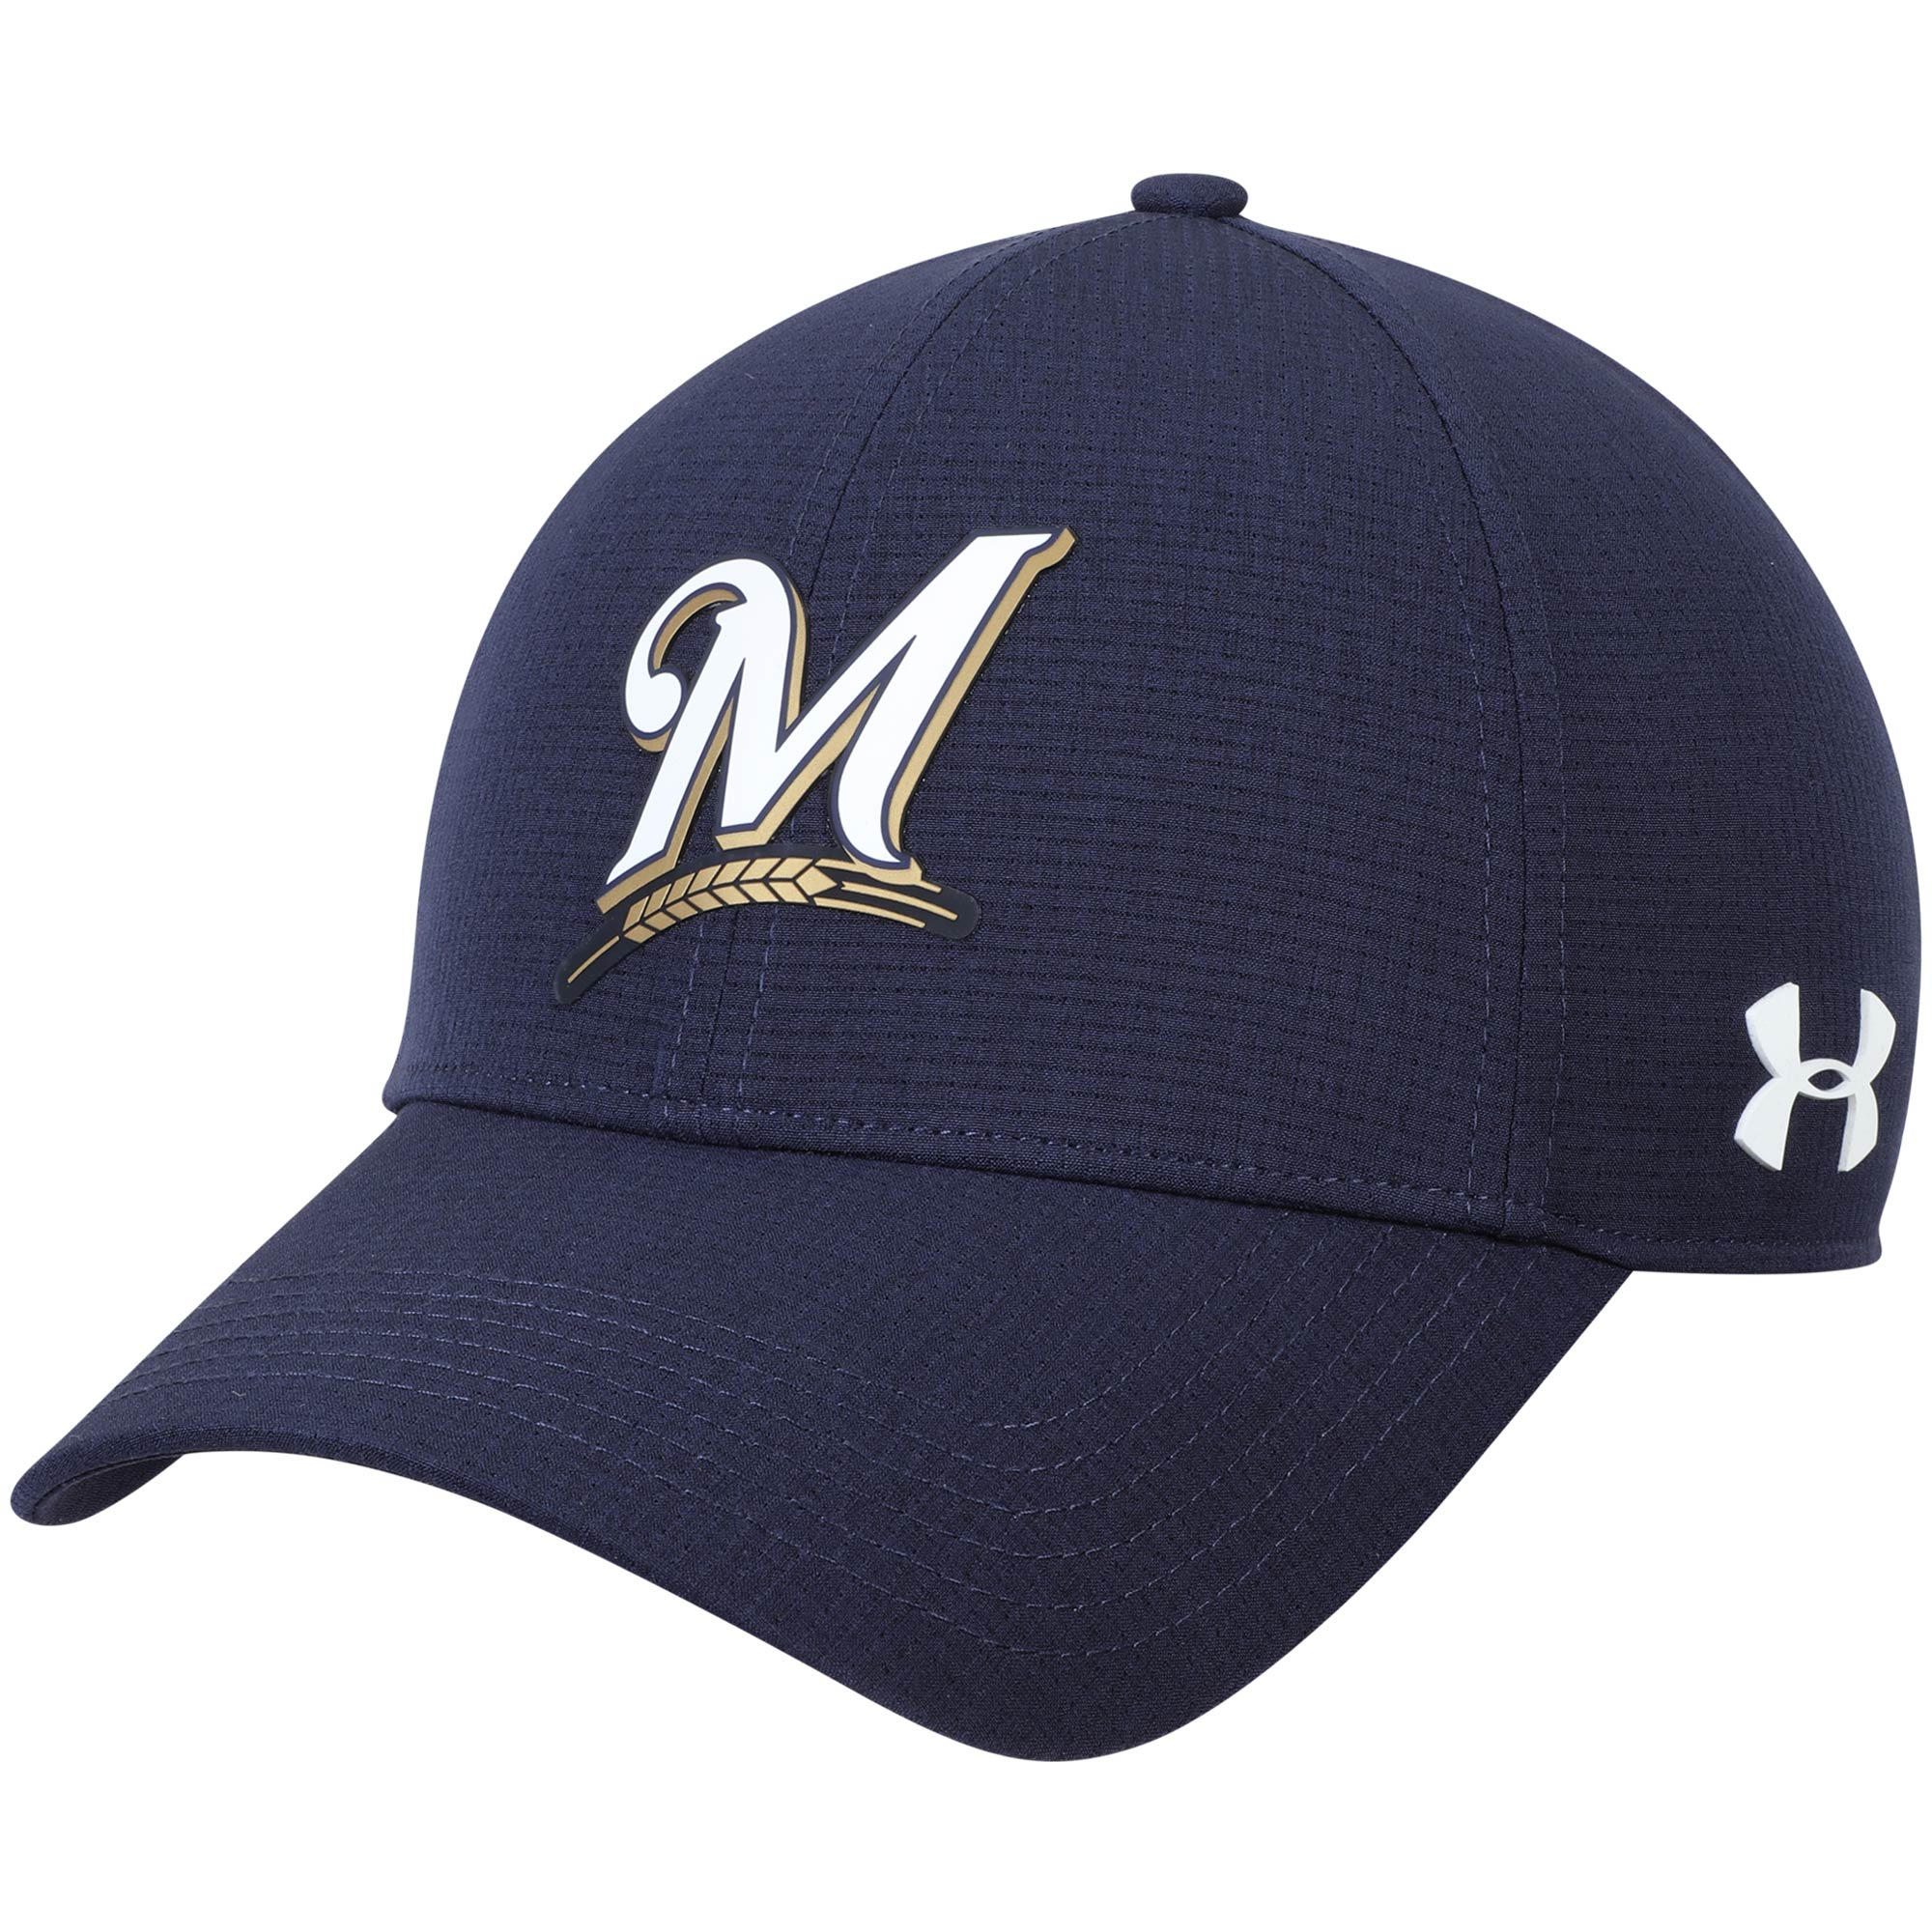 b88926685a4 ... sweden milwaukee brewers under armour mlb driver cap 2.0 adjustable hat  navy osfa a4c65 77c51